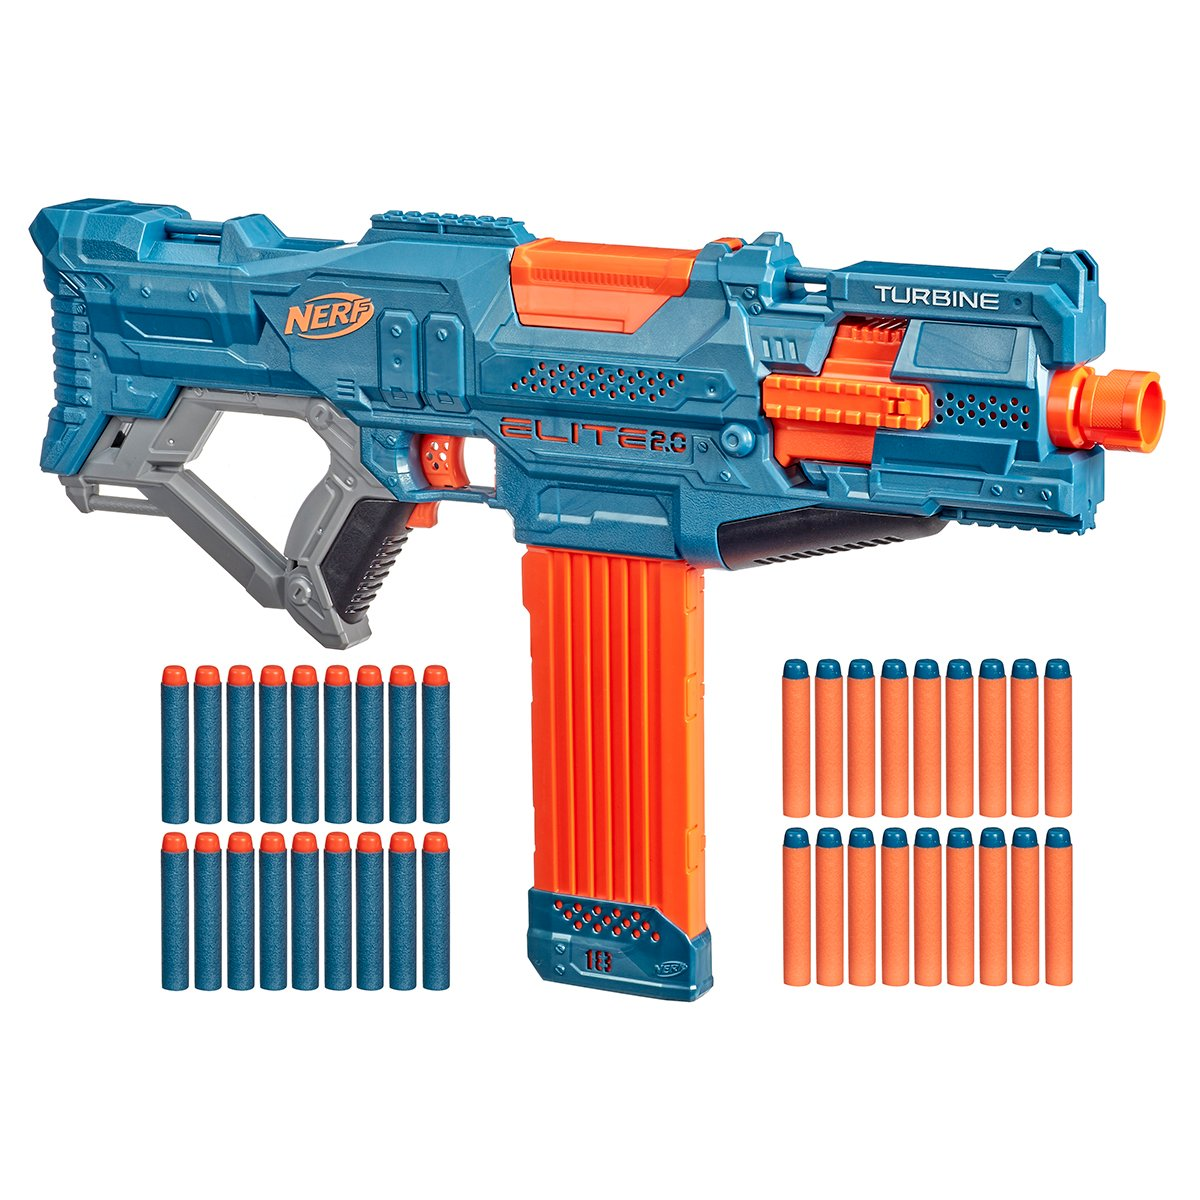 Blaster Nerf Elite 2.0 Turbine CS-18